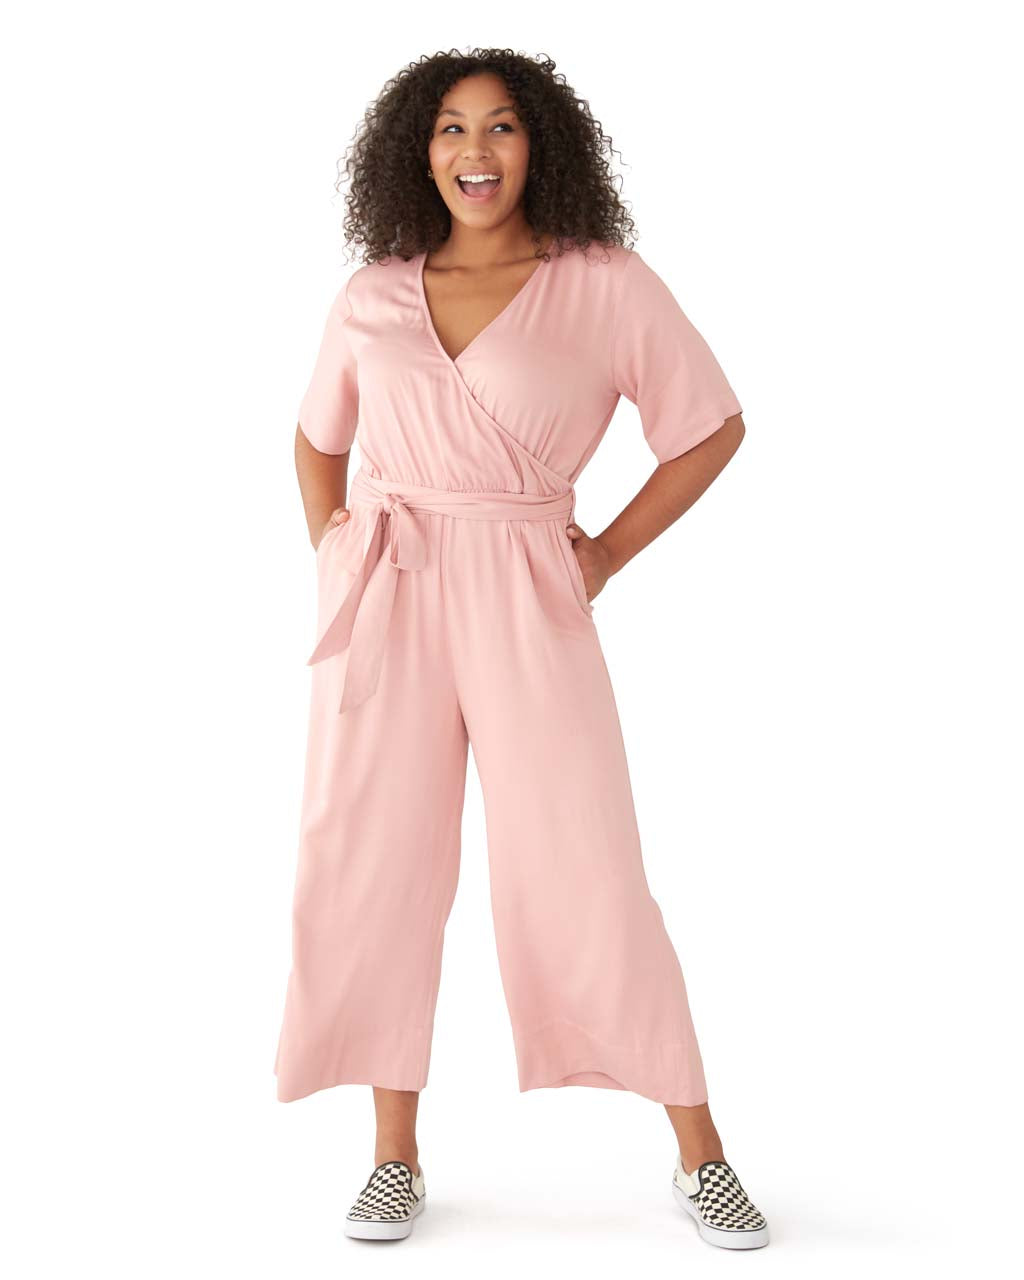 This jumpsuit comes in pink.